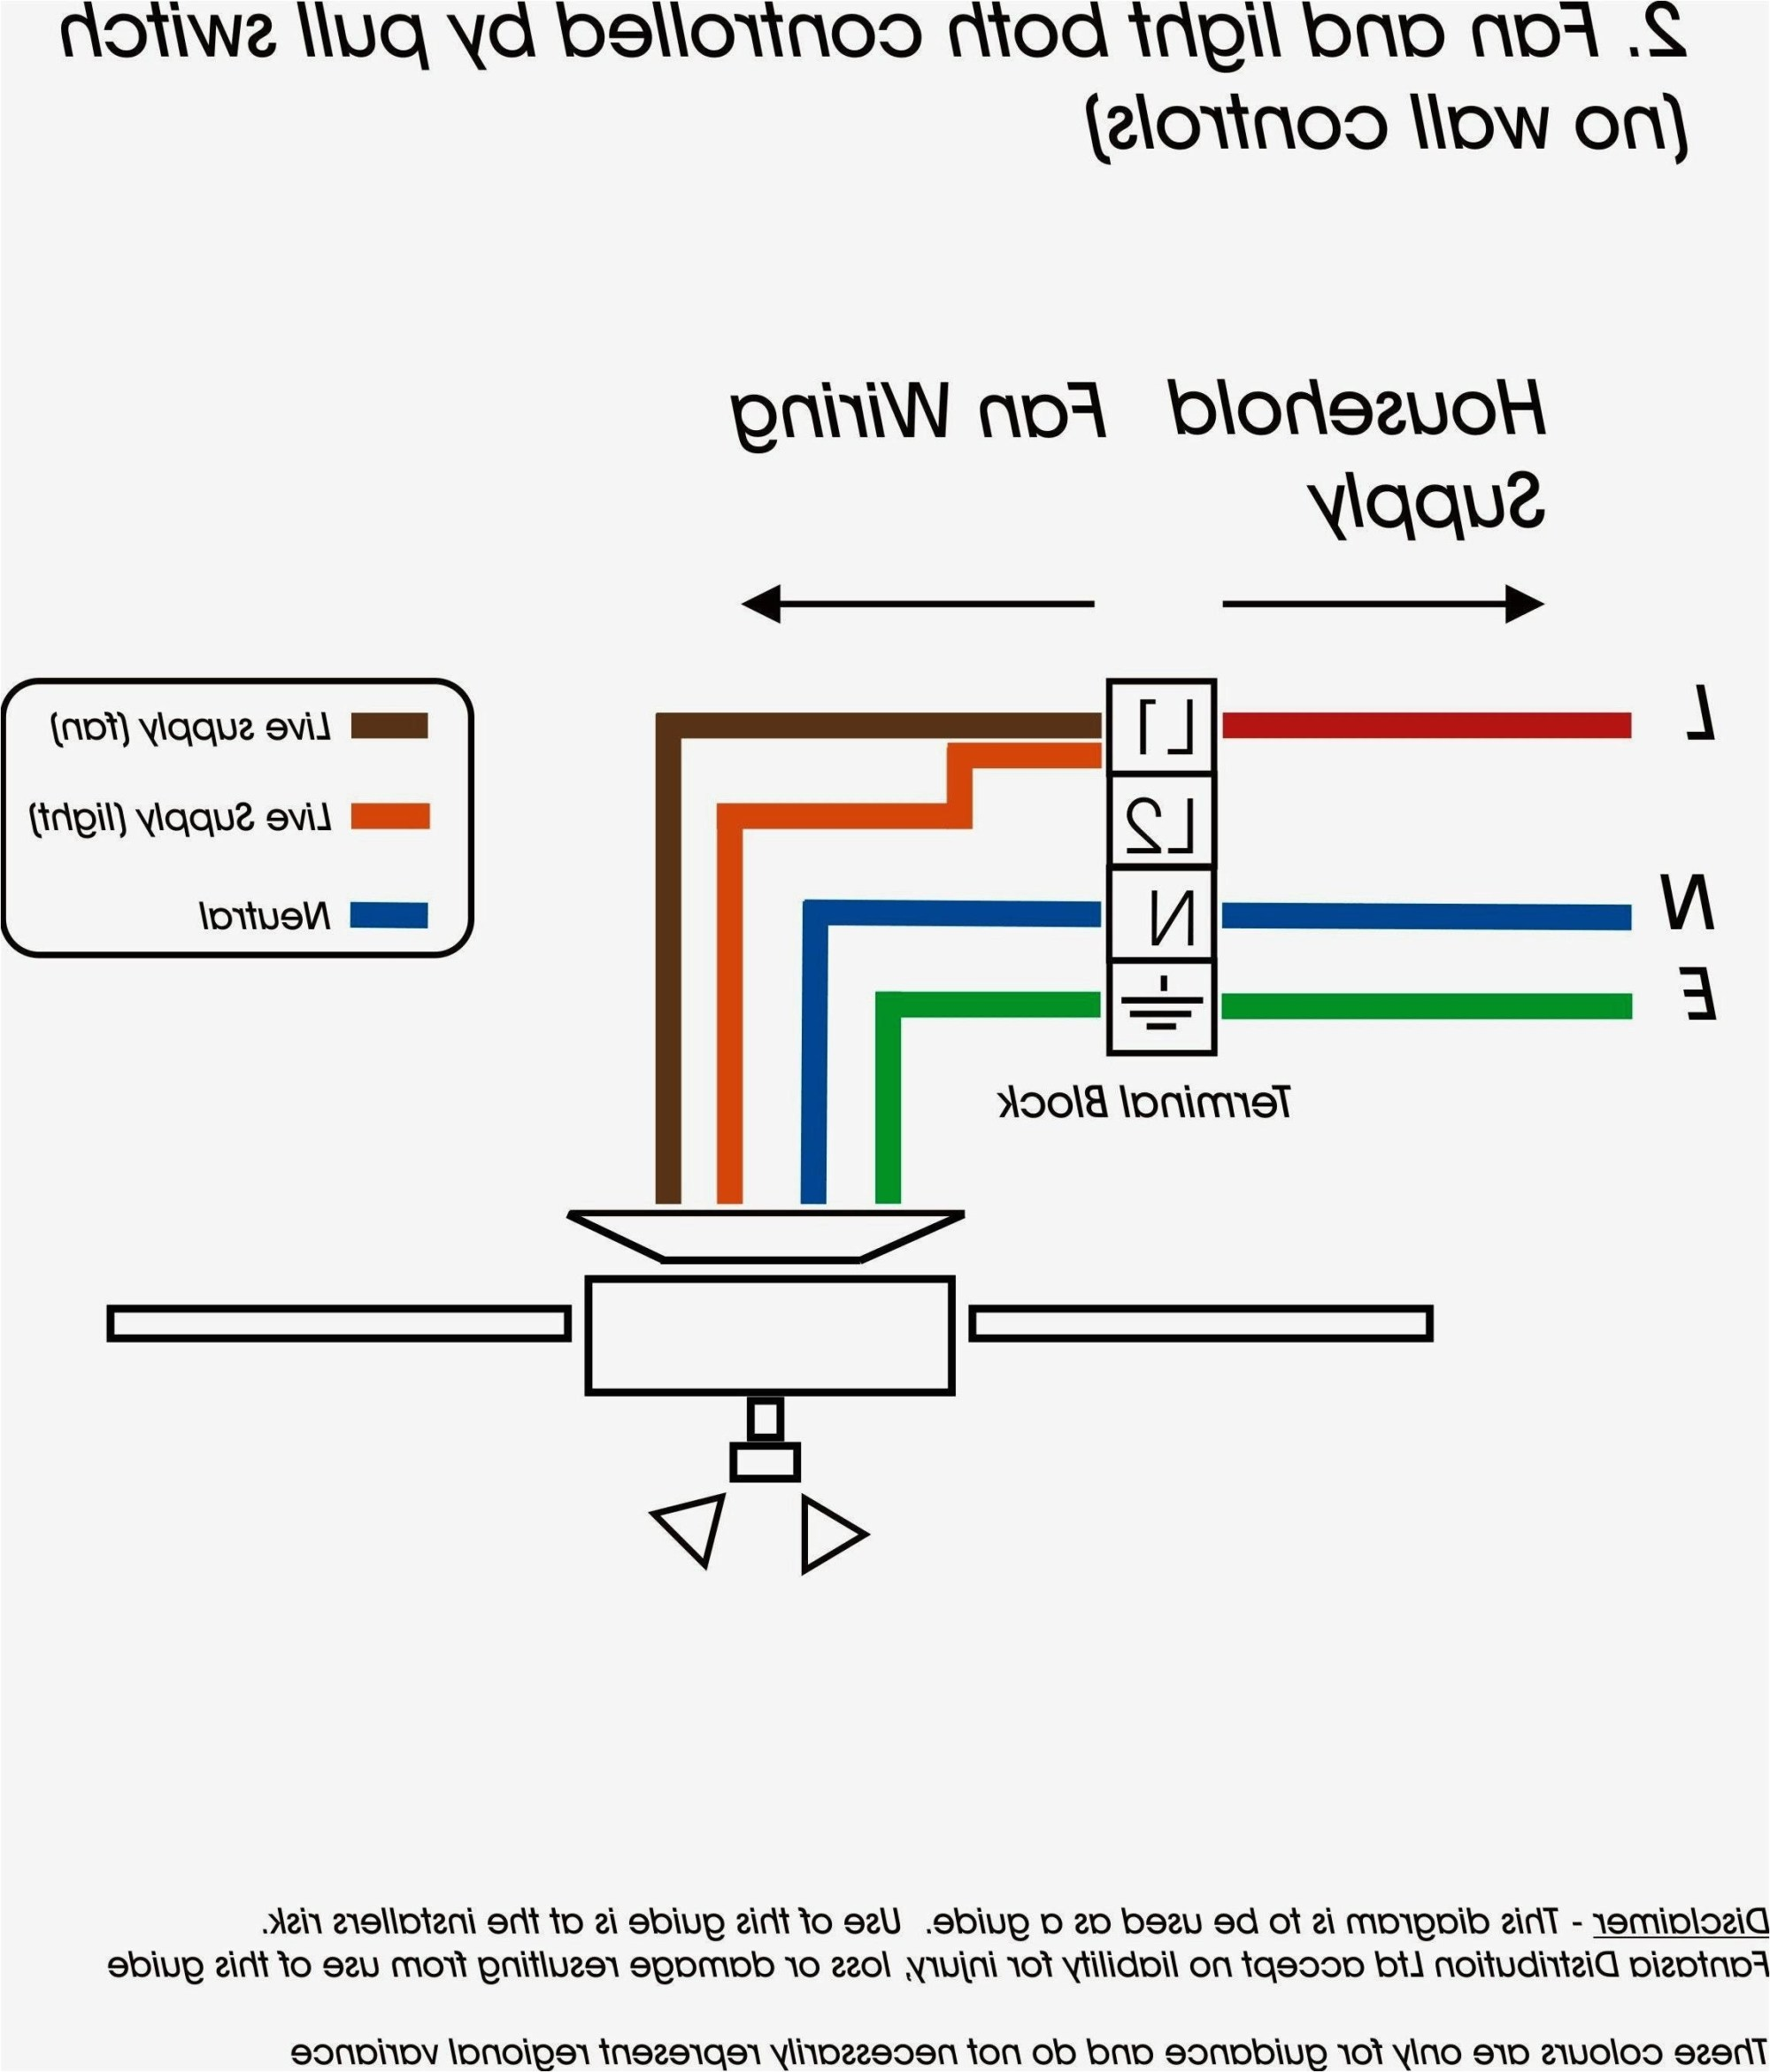 hight resolution of light table wiring diagram simple wiring diagrams light switch home wiring diagram light table wiring diagram